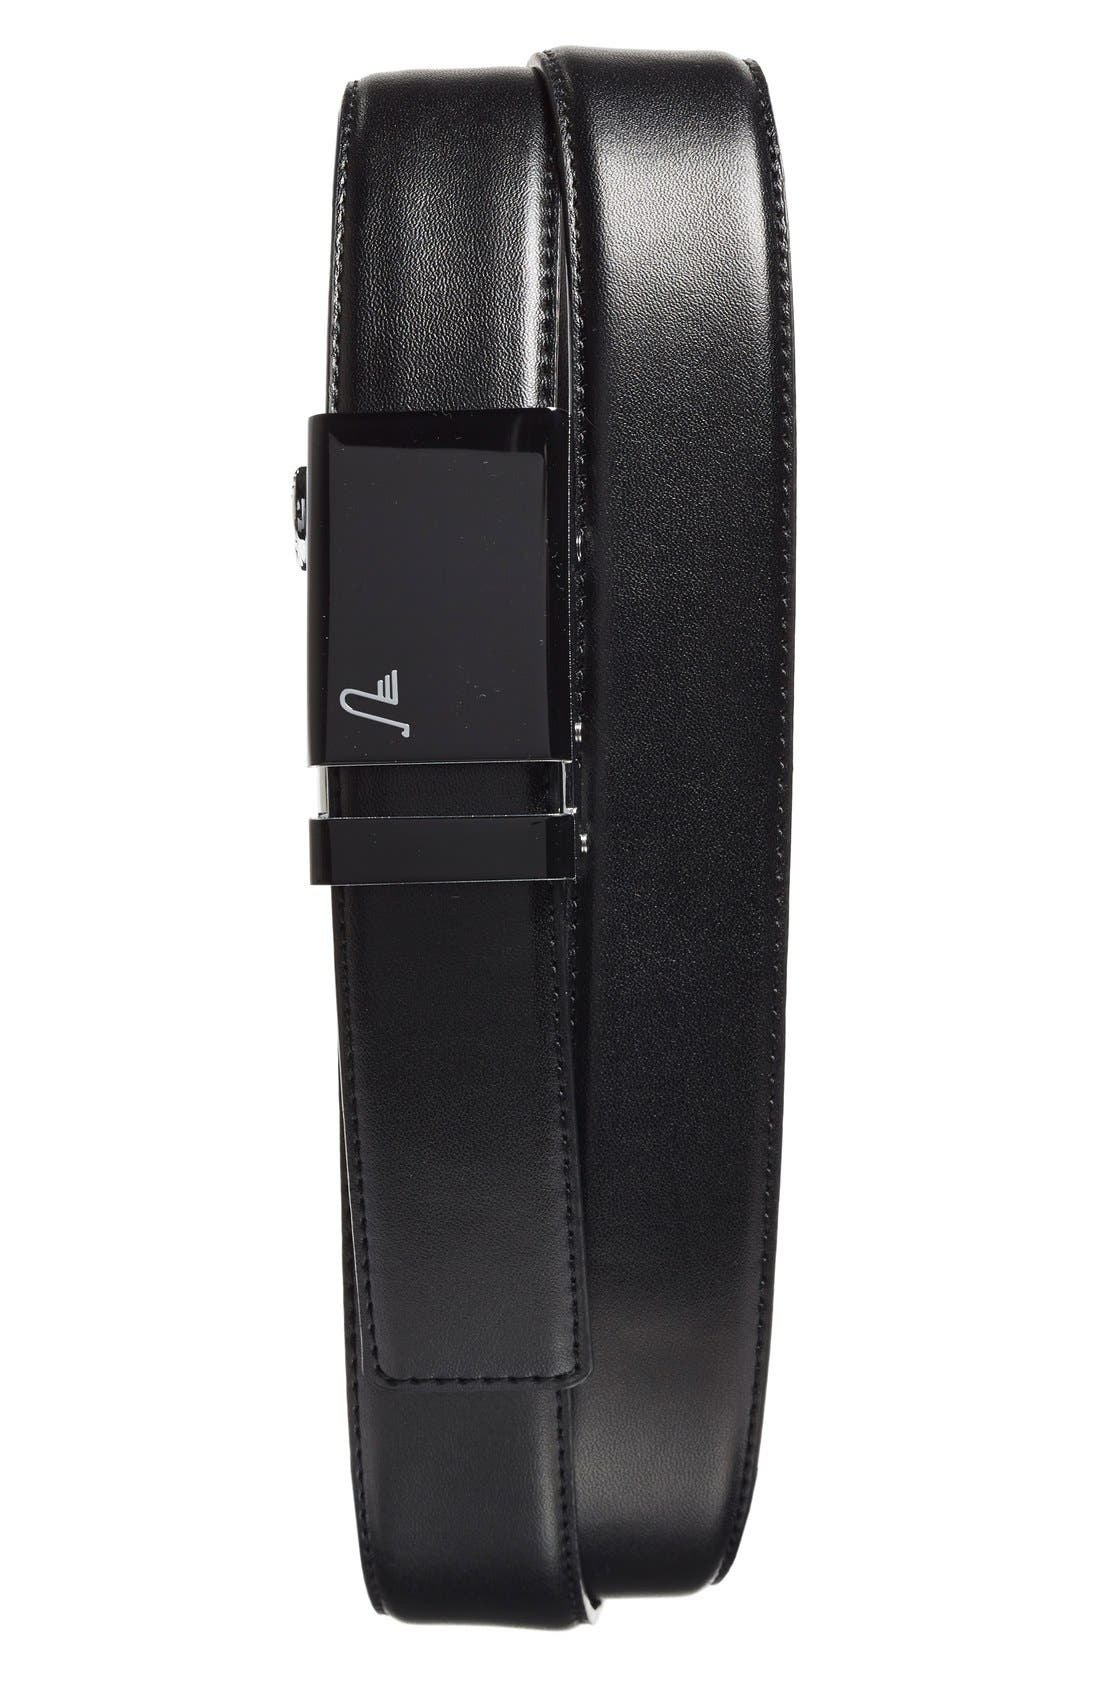 MISSION BELT Vader 40 Leather Belt